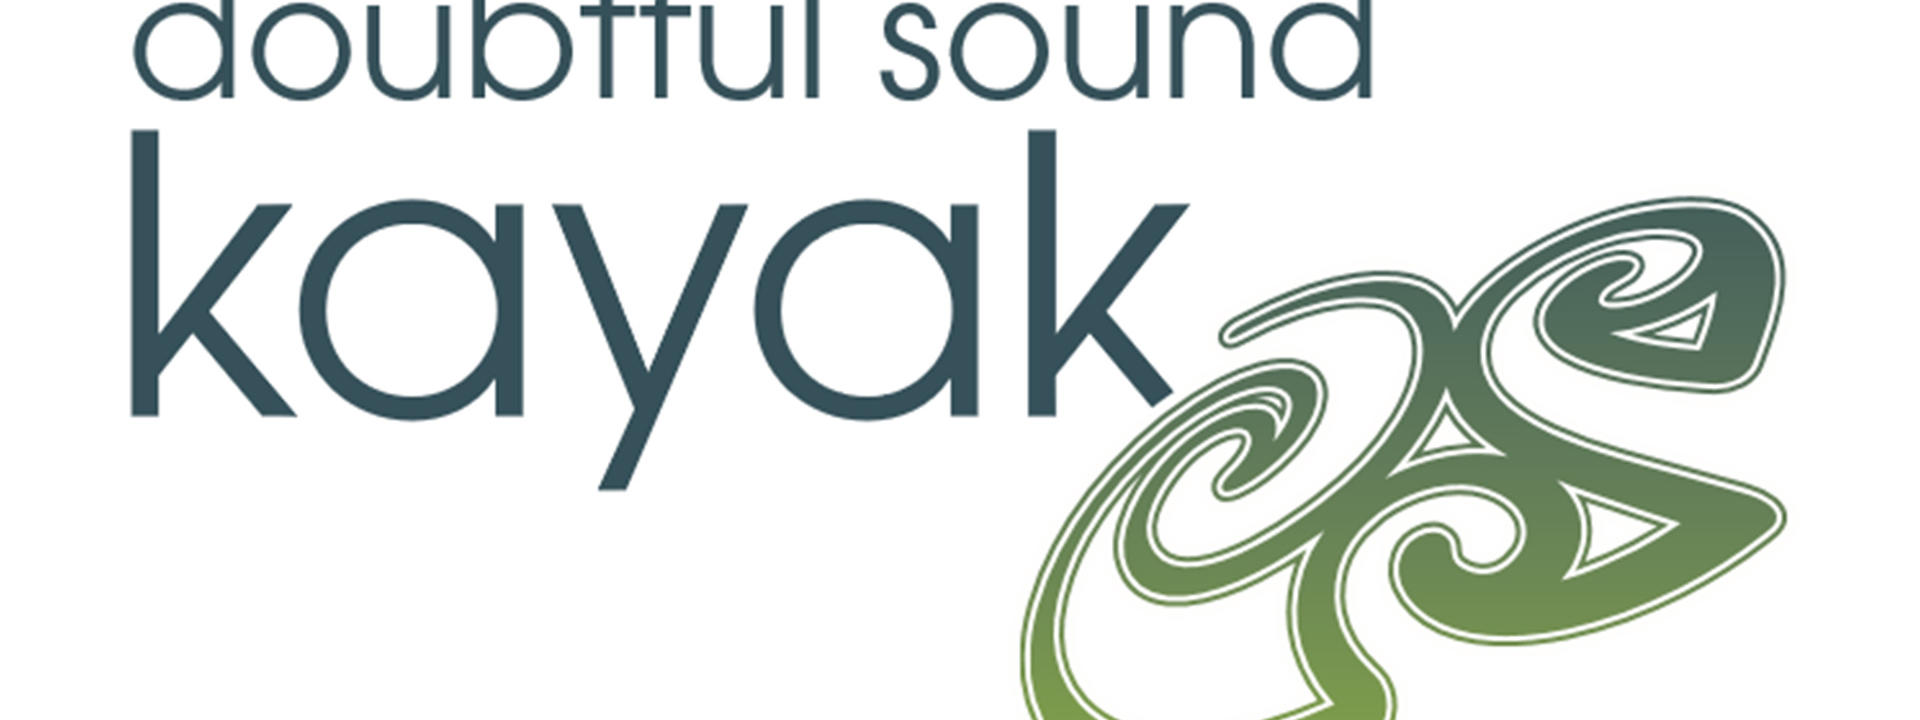 Logo: Doubtful Sound Kayak